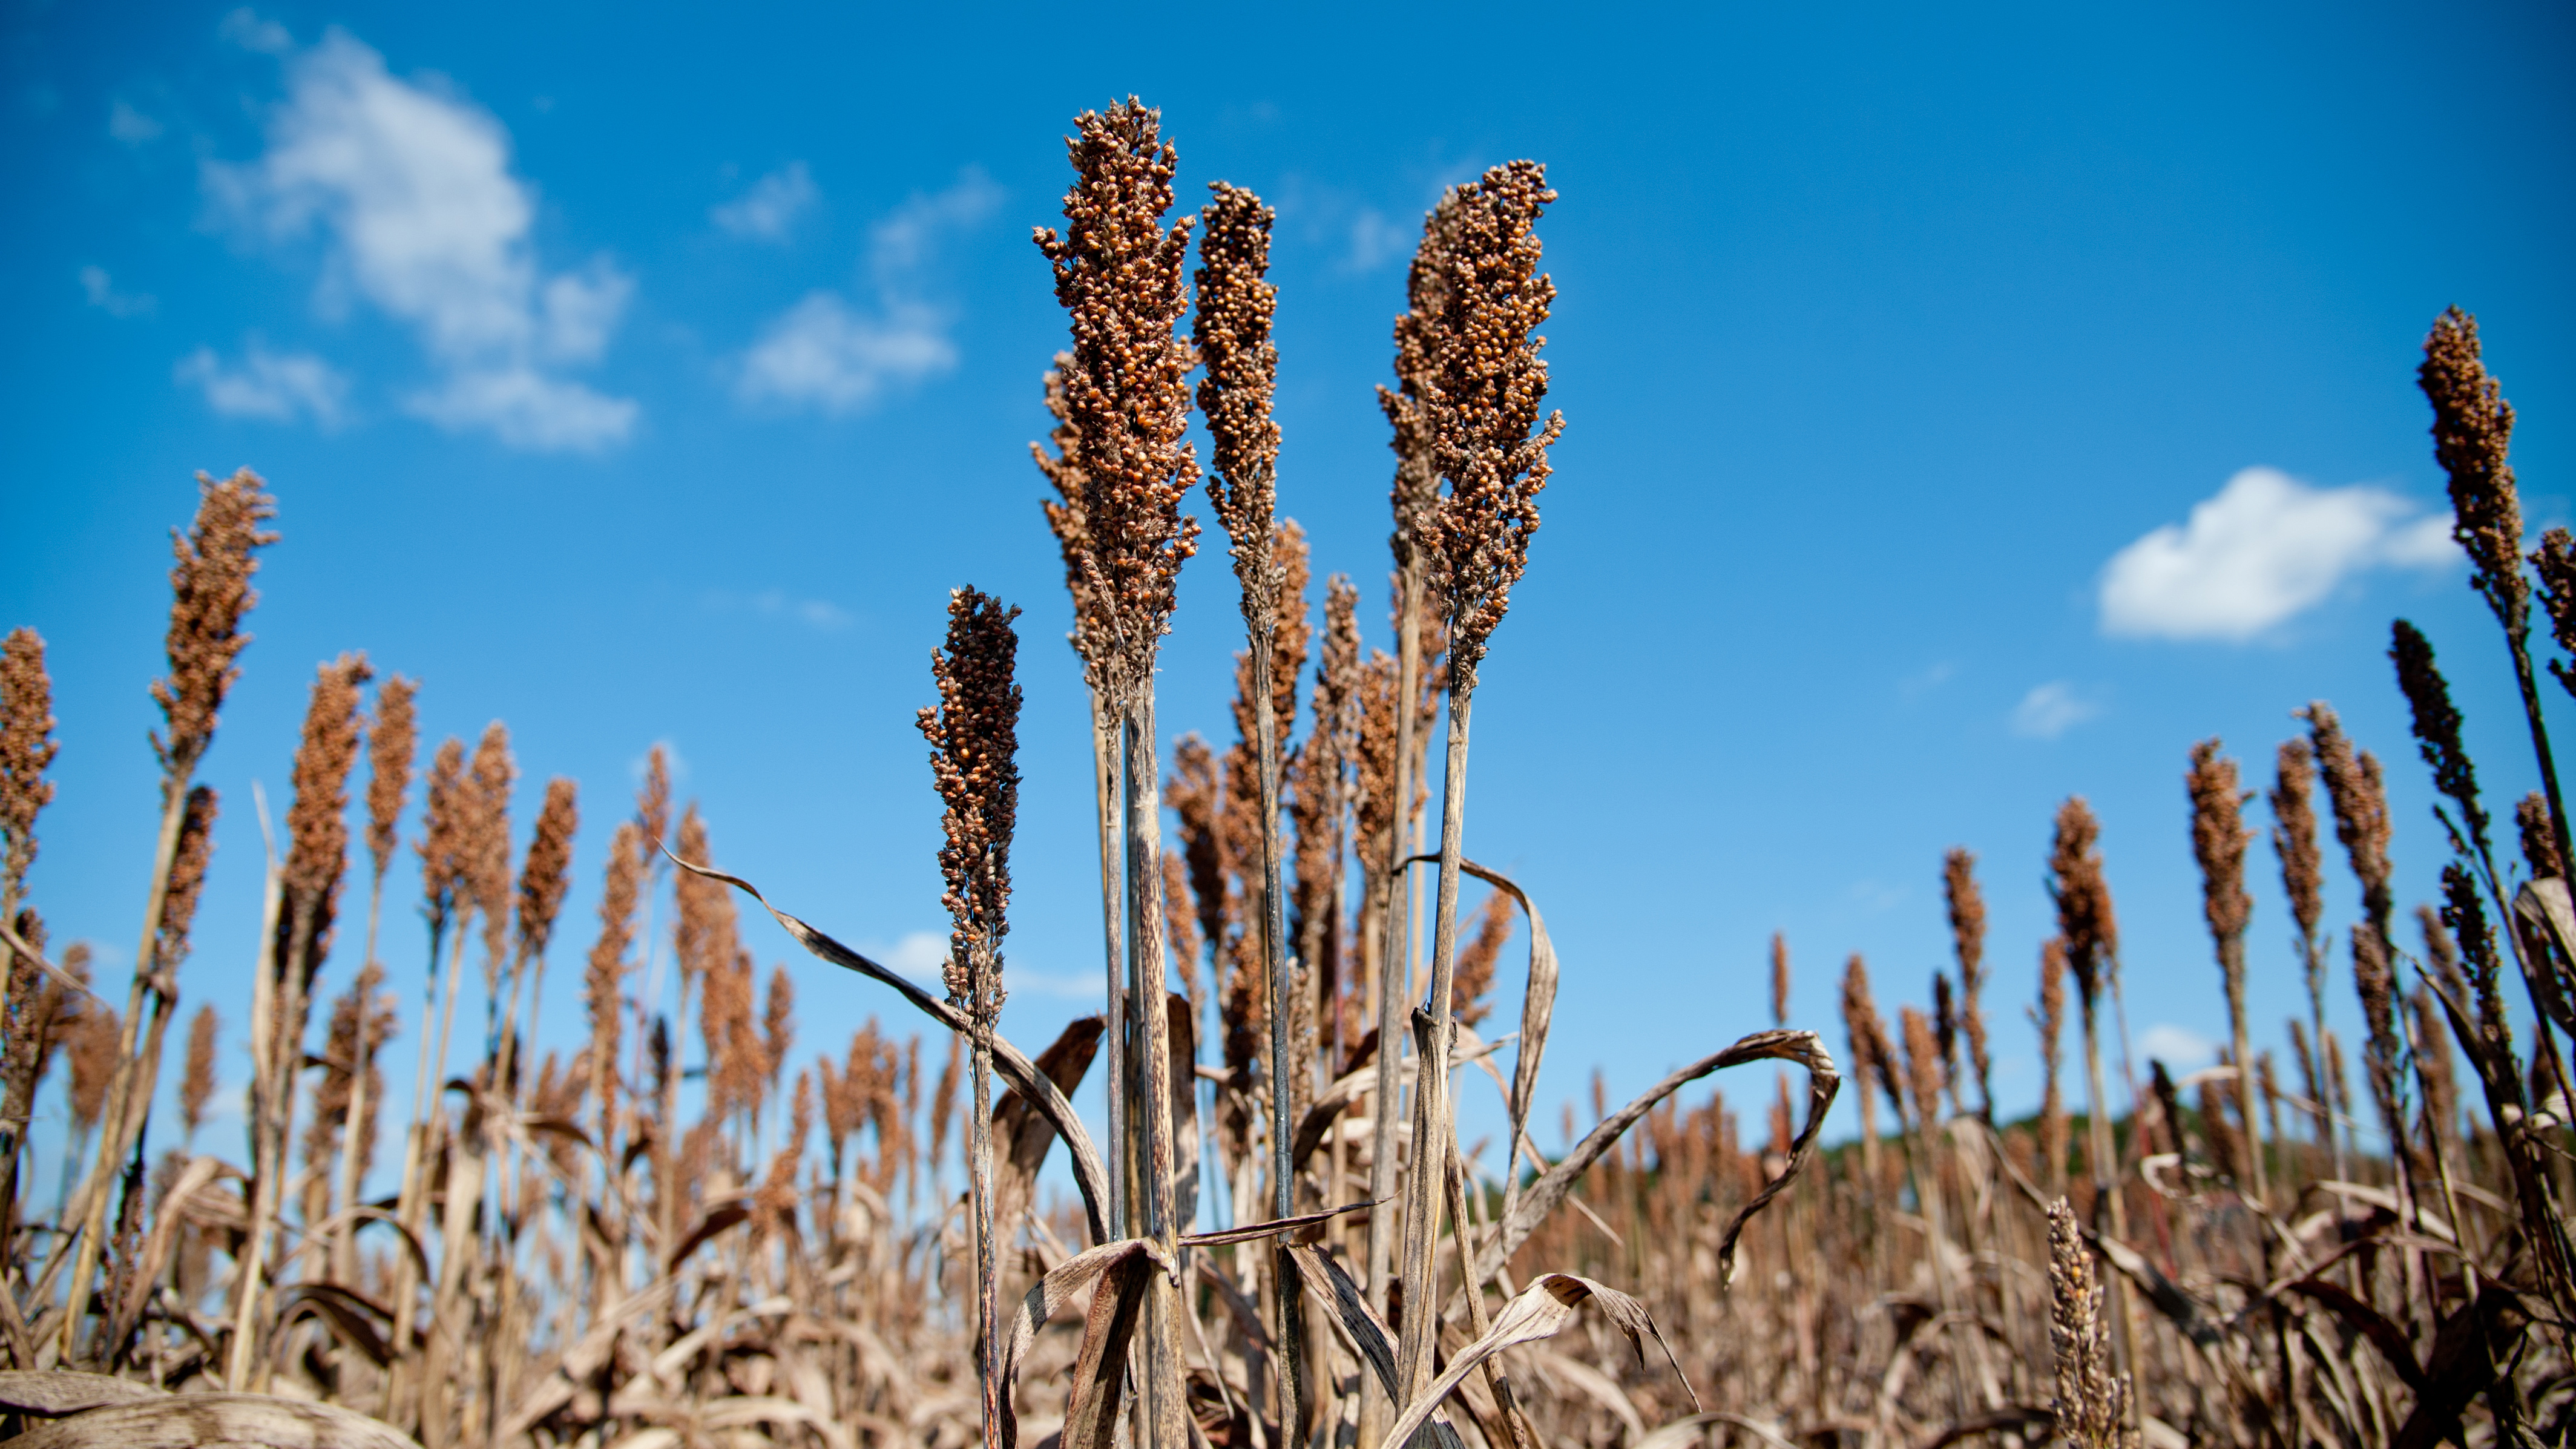 Field of sorghum ready for harvest.